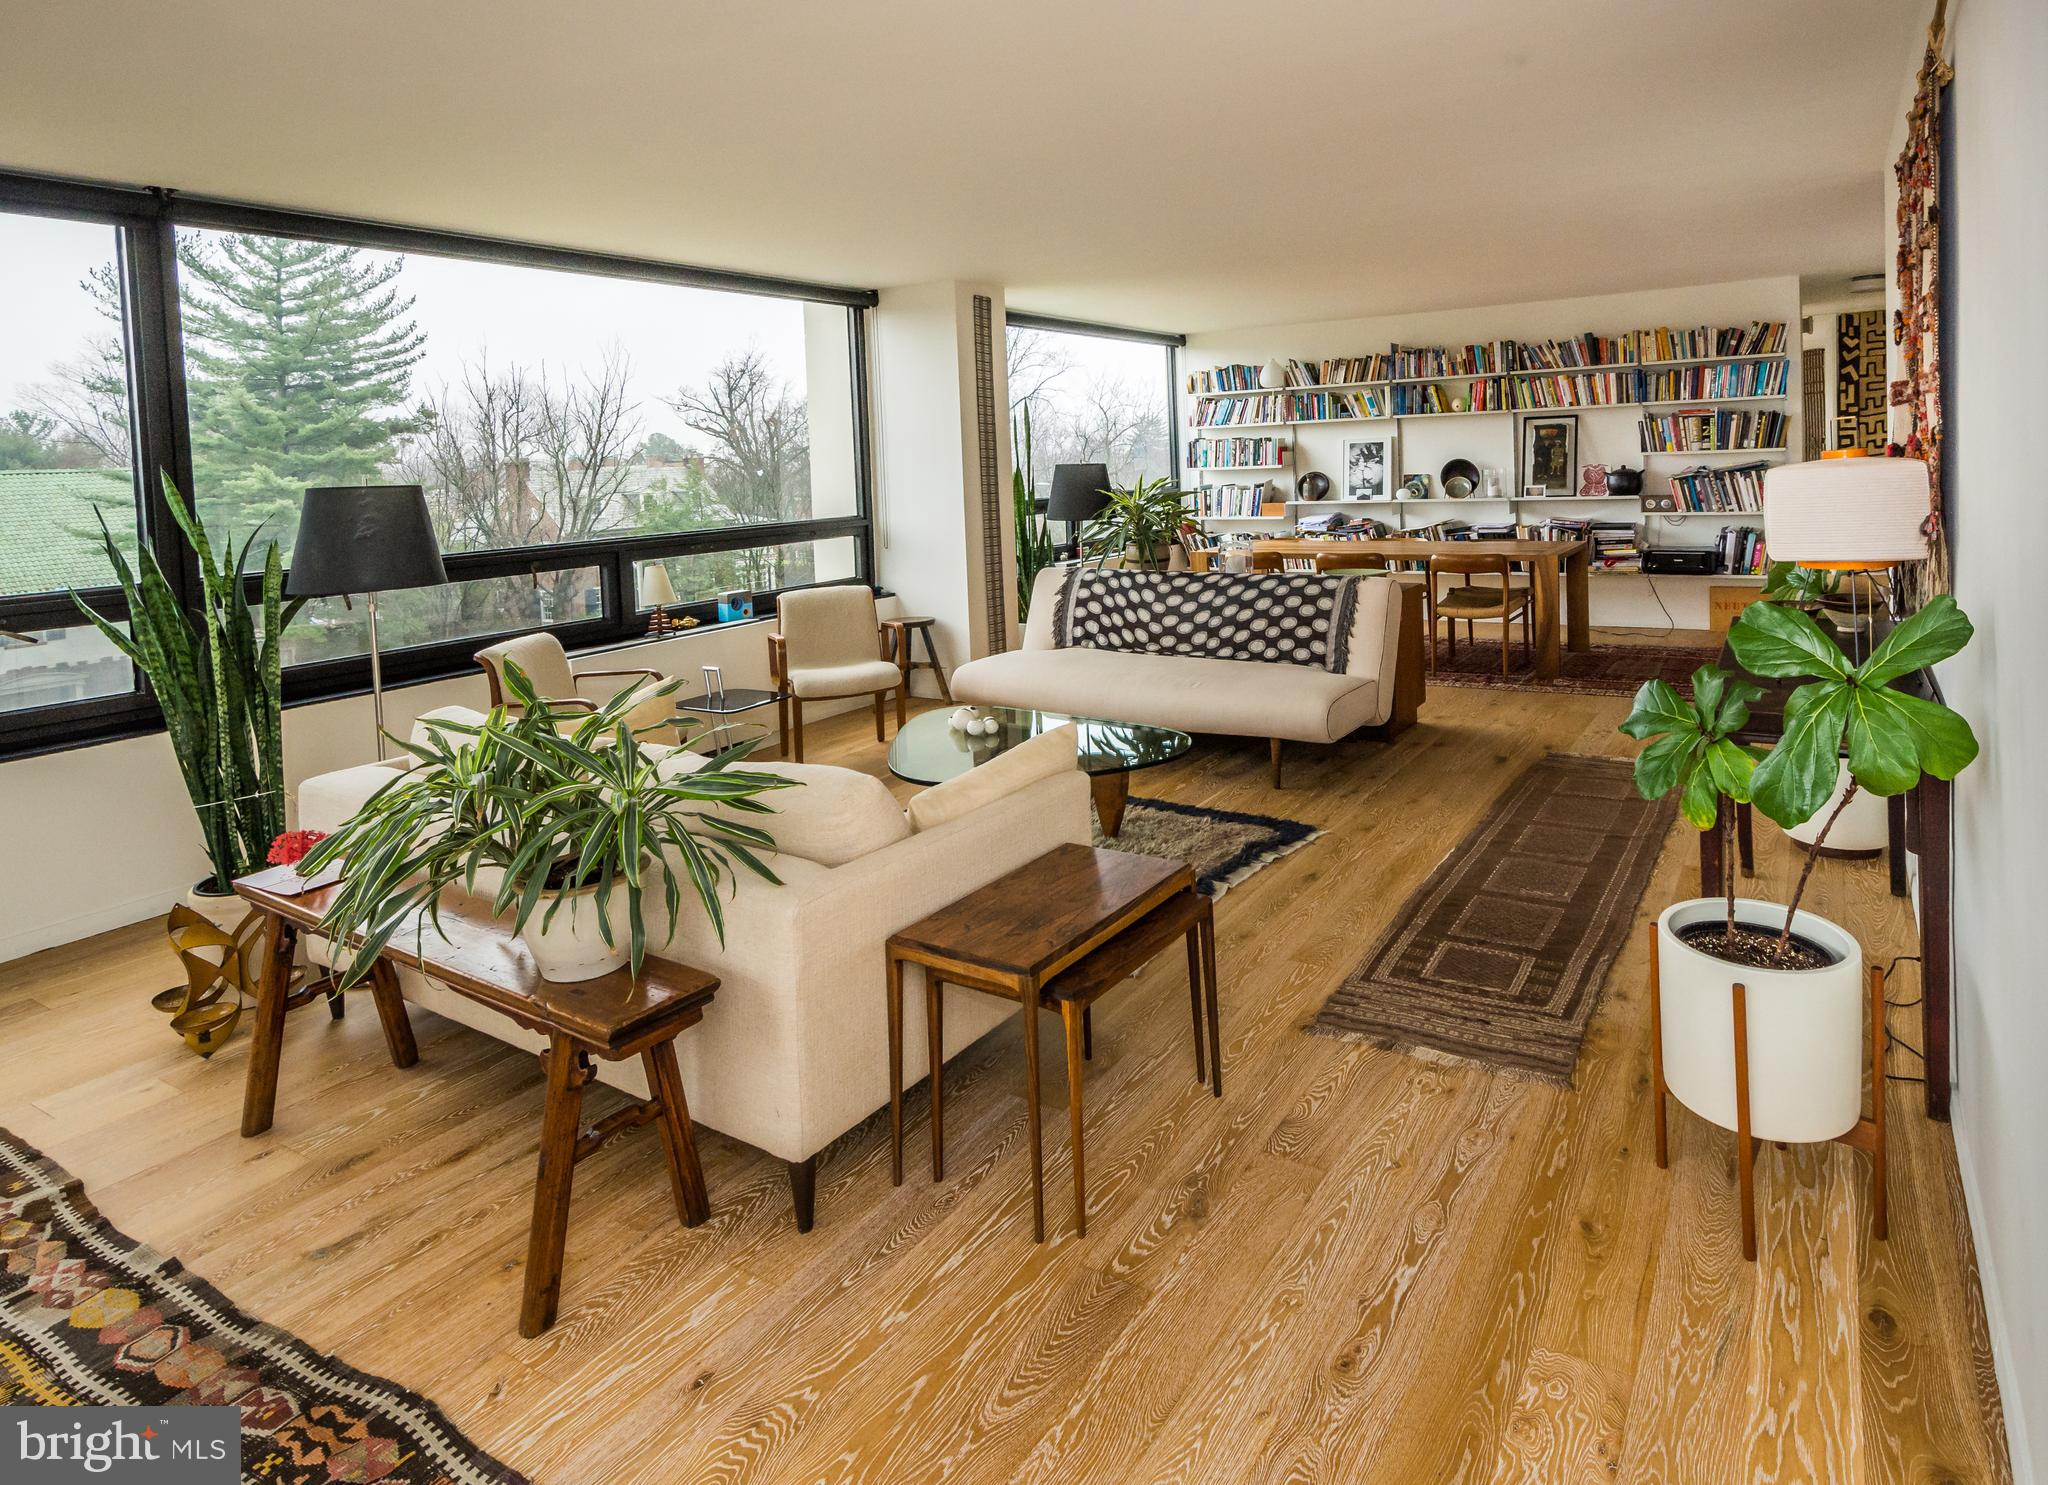 Located in The Highfield House Condominiums, a stunning example of mid-century modernist architecture, this magnificent, 1,505 square-foot corner unit, formerly a 3-bedroom, was renovated to create an airy open space and dramatic, oversized main living area.  The wall-to-wall windows frame the majestic neighborhood of Guilford, giving expansive, panoramic north and easterly views.  Spectacular wood floors throughout.....the bright kitchen was designed to honor the vision of the period, with the sleek, modern appliances of today.  A true masterpiece!  The Highfield House rises over the quiet neighborhood of Tuscany-Canterbury and is designed by a man considered to be one of the pioneers of the form:  Ludwig Mies van der Rohe.   Van der Rohe accepted less than 10 residential commissions in his lifetime, the Highfield being one of them.  It exemplifies the modernist ethos of form-following function, yet its simplicity remains indescribably beautiful. It was added to the National Register of Historic Places in 2007.  24-hour full service building with pool and fitness - gorgeous common spaces.  Condo fee includes central air conditioning, heat, cooking gas, hot water.  Pet-free building.